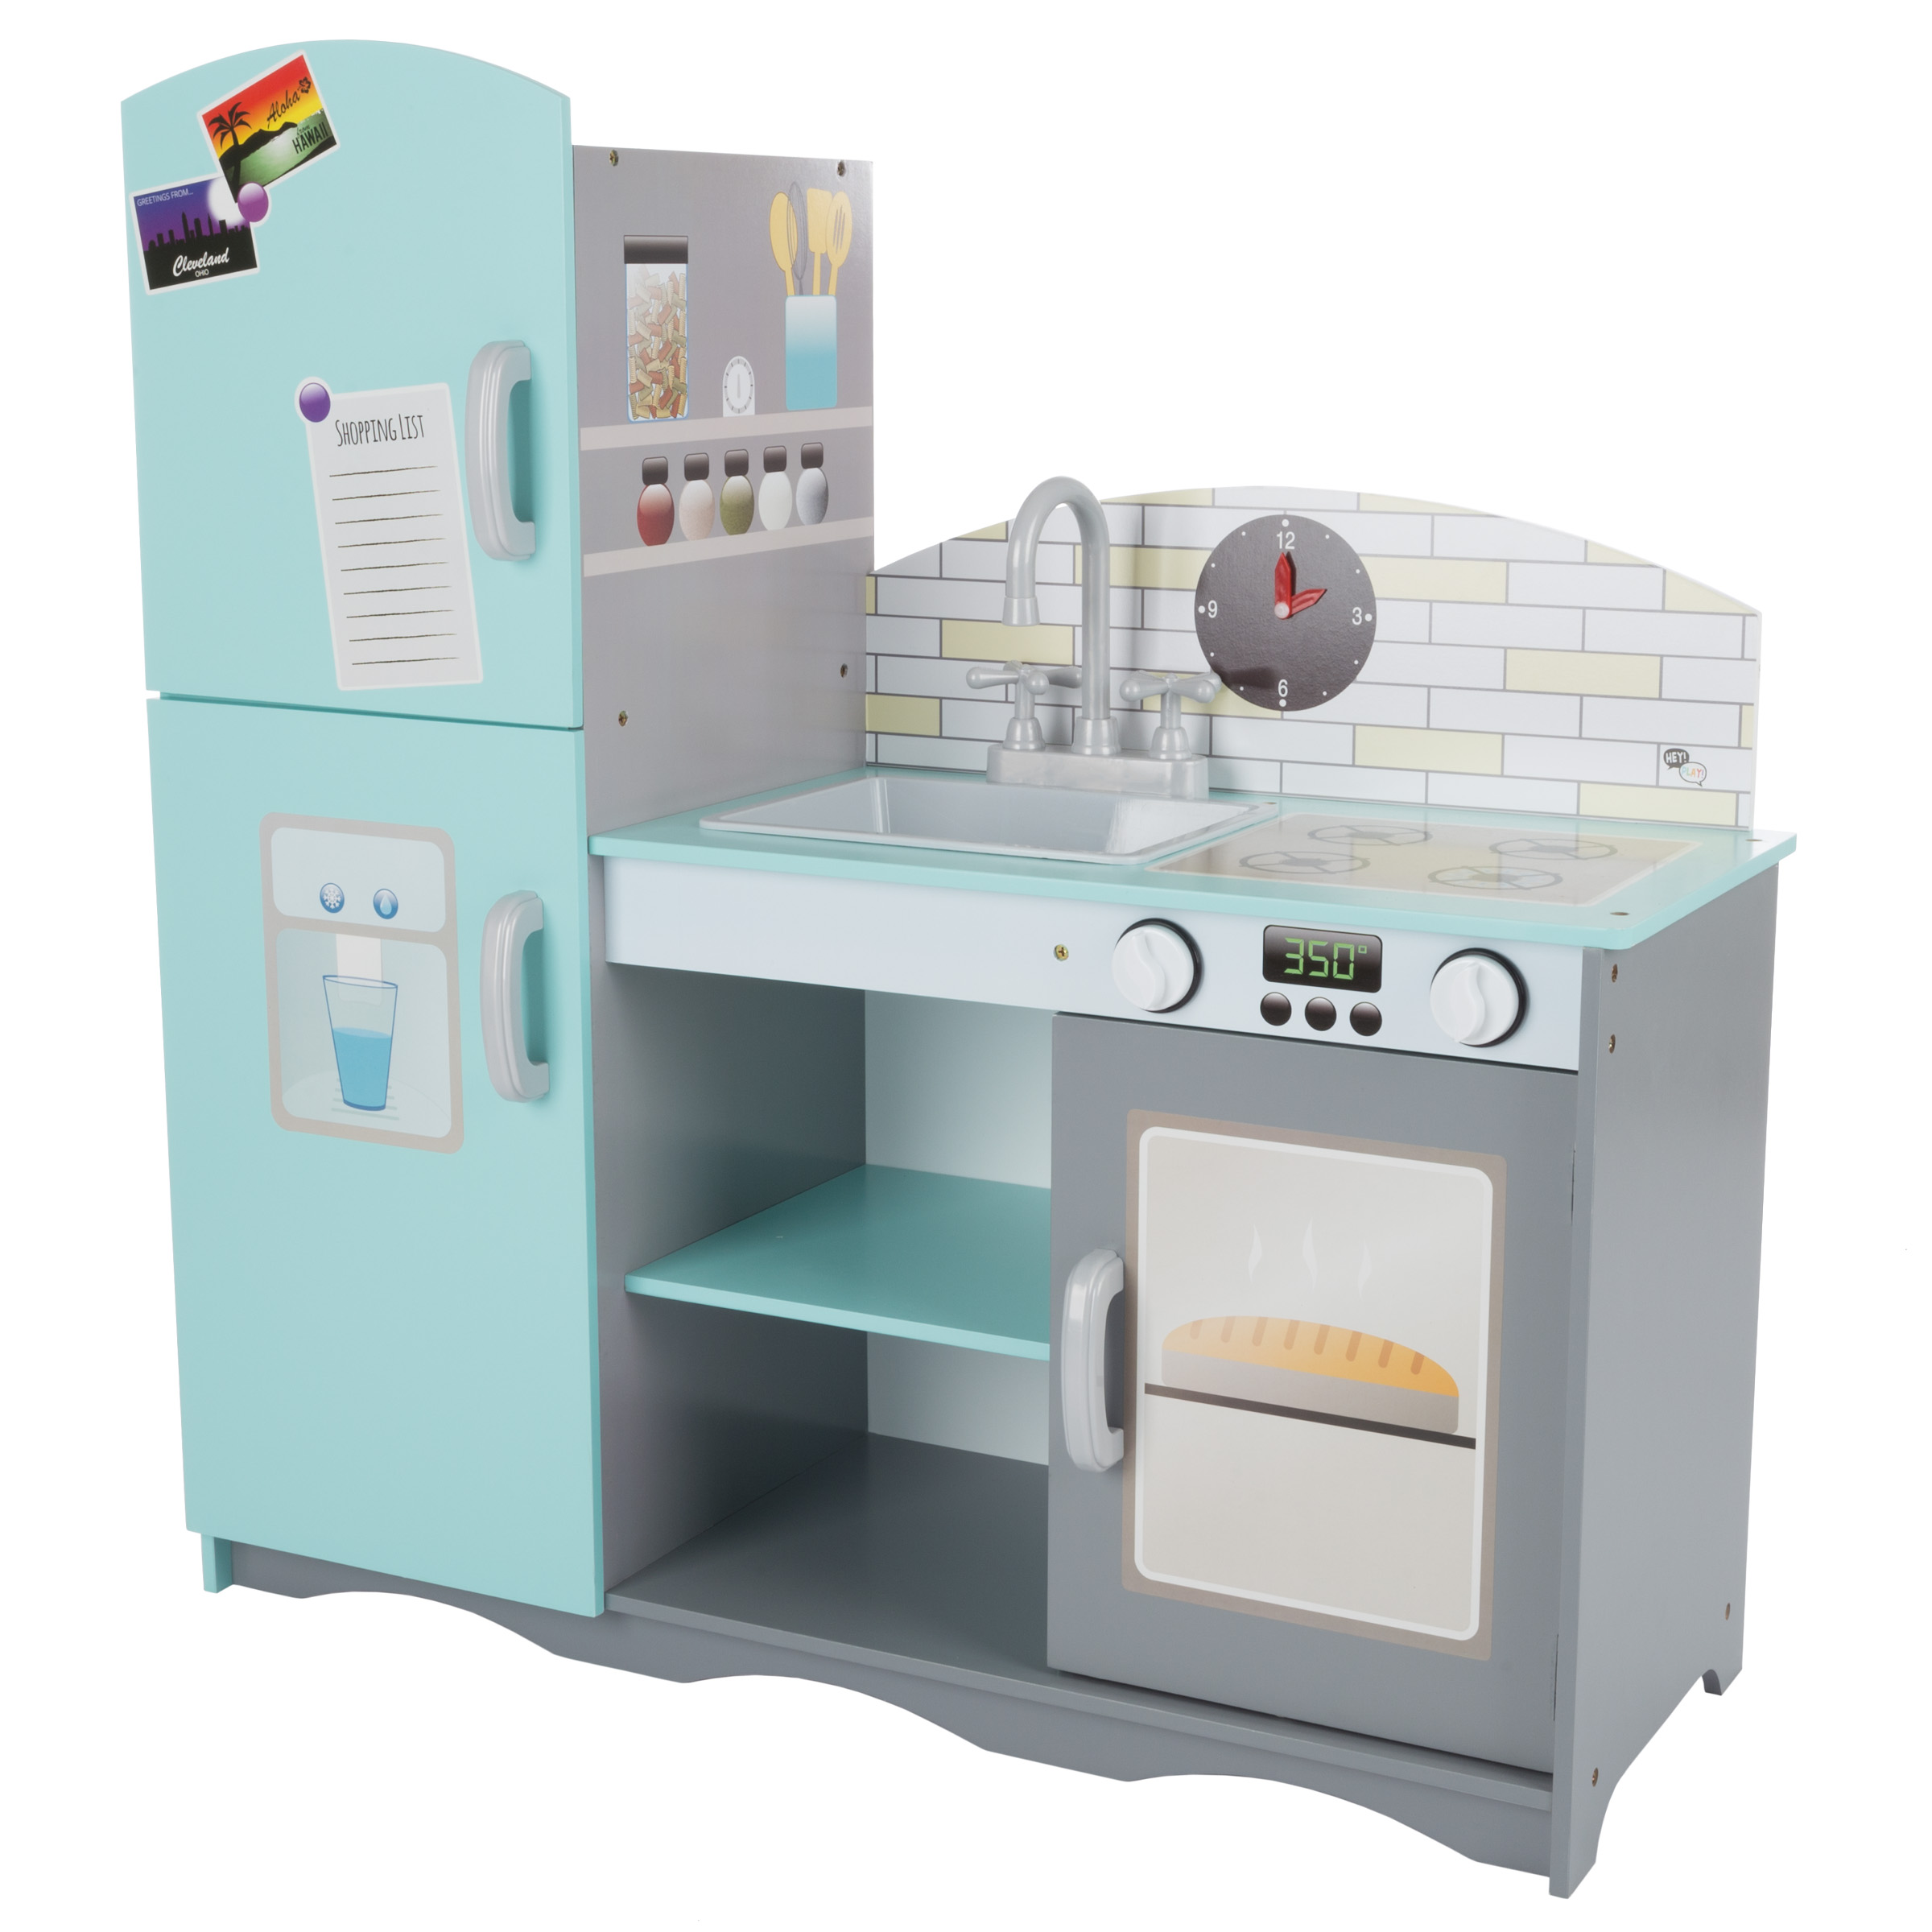 boys play kitchen set fun gadgets kids toy pretend home playset with oven sink stove refrigerator freezer and more for girls by hey